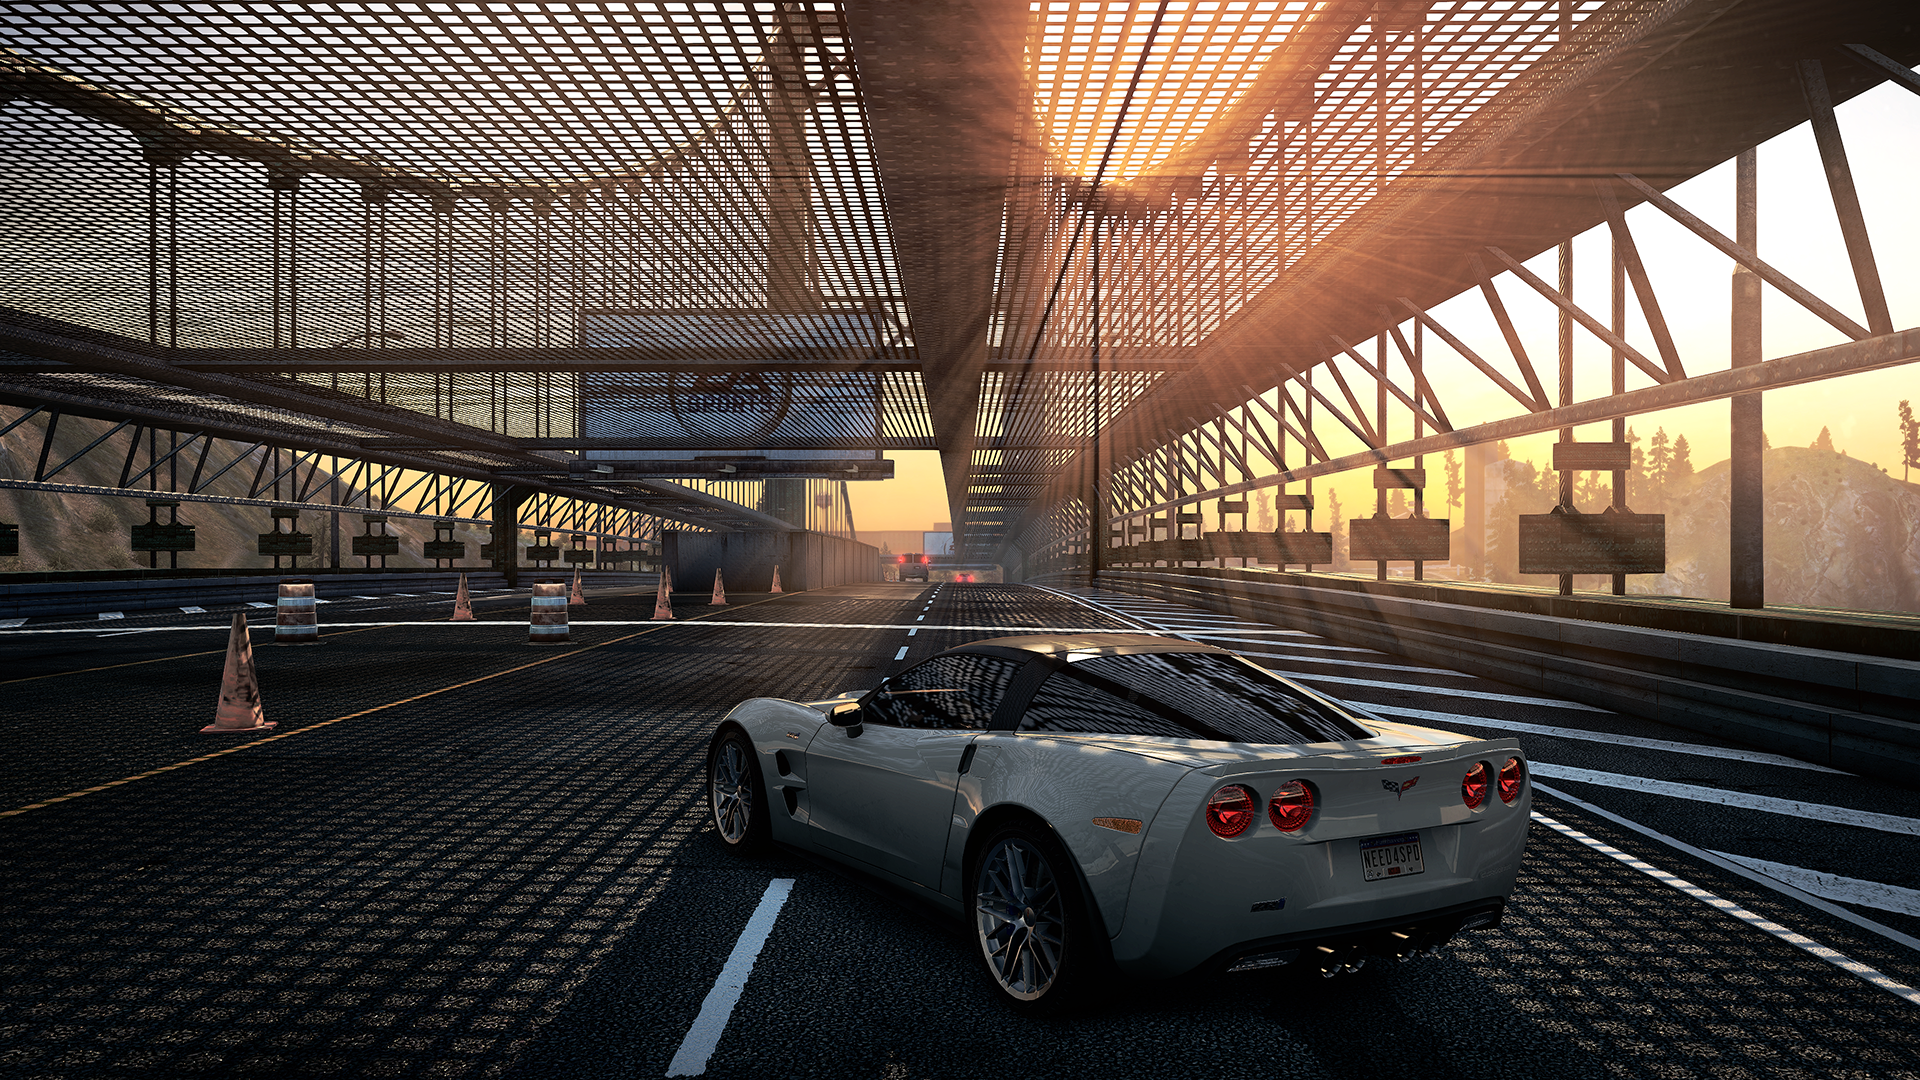 55 Need For Speed Most Wanted Hd Wallpapers Background Images